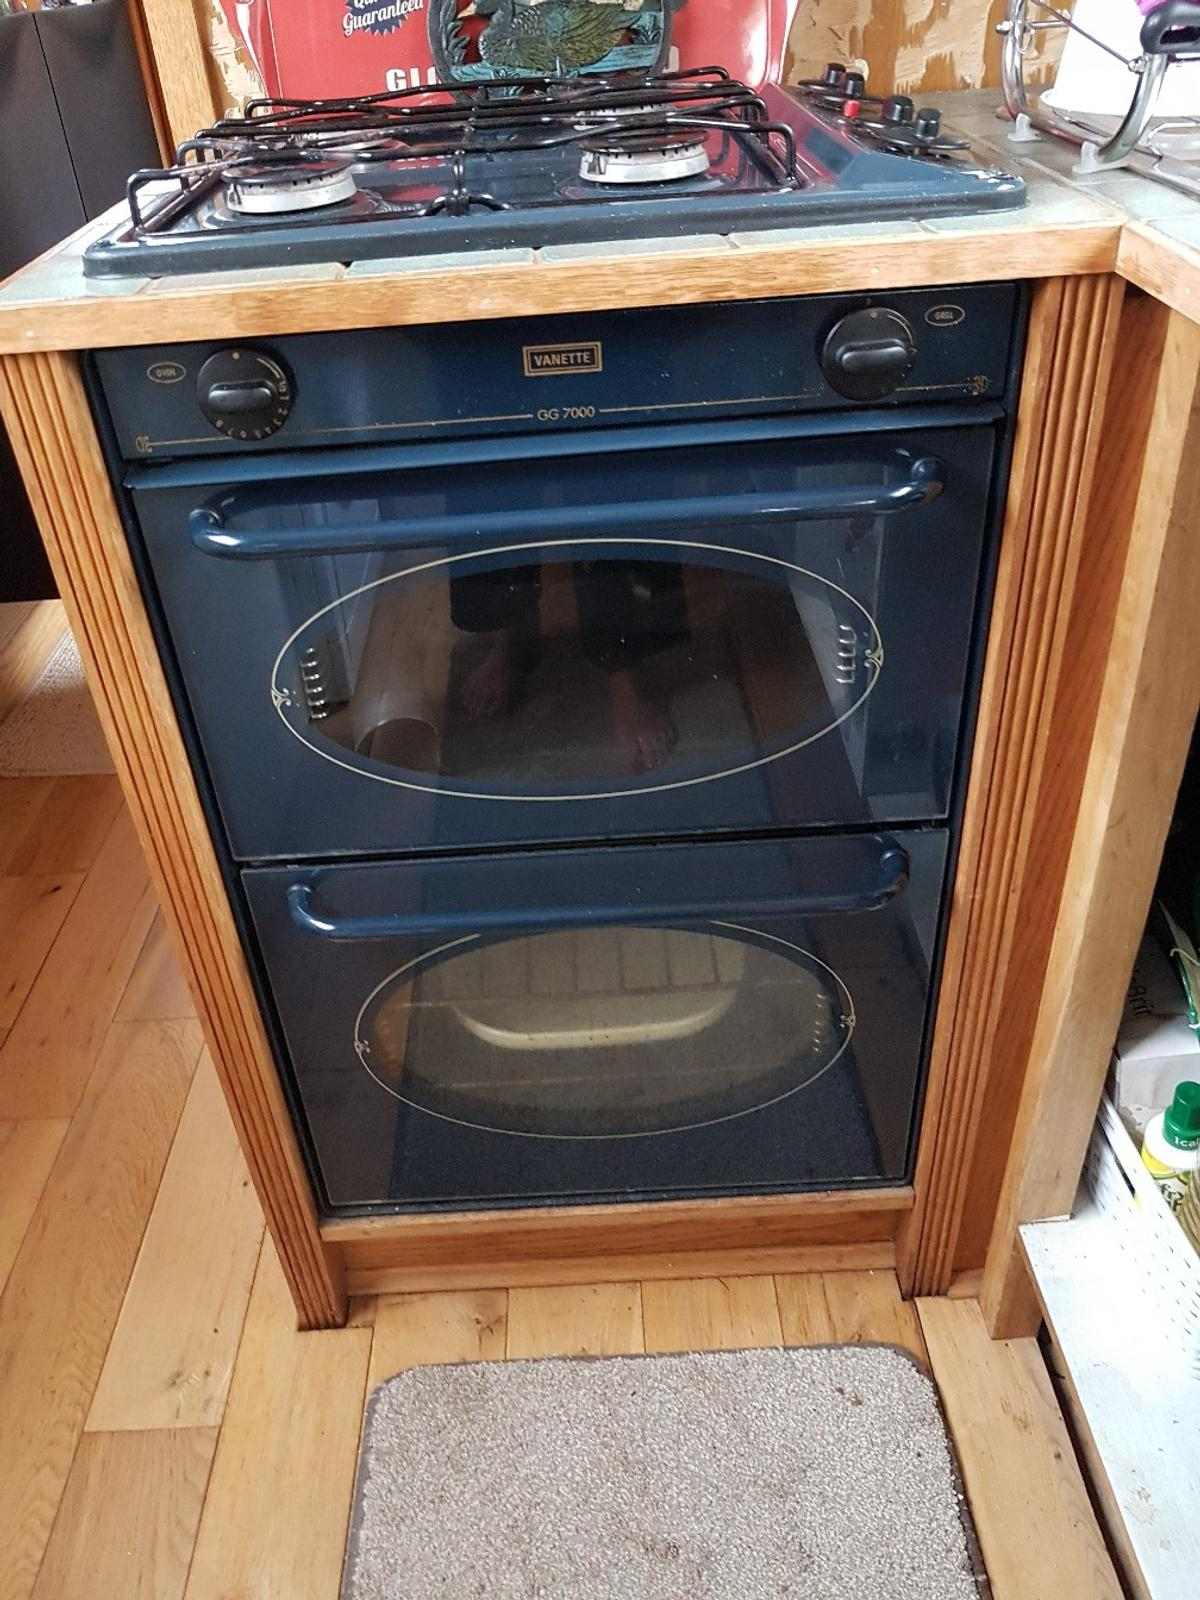 LPG gas hob and oven/grill built in unit